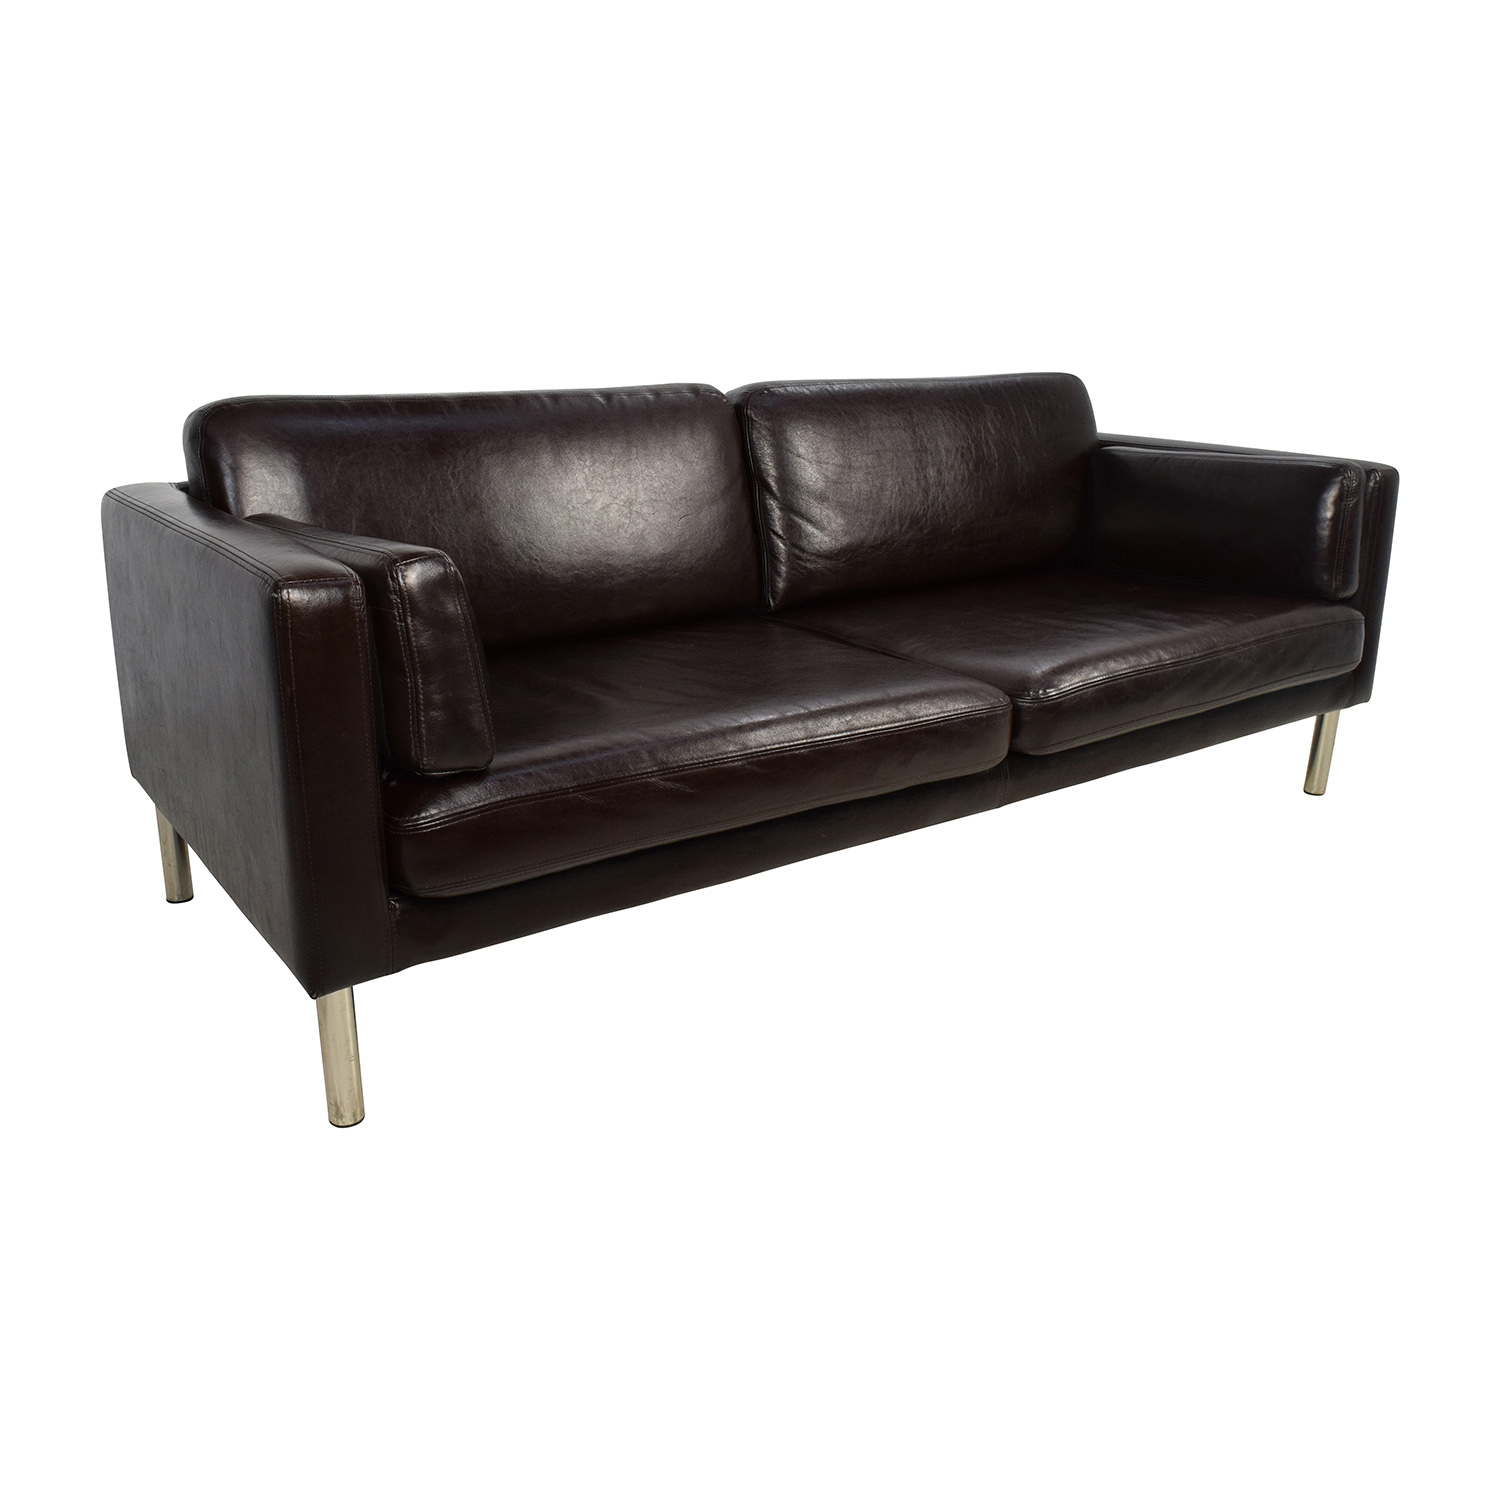 Leather Sofa With Chrome Legs Home The Honoroak